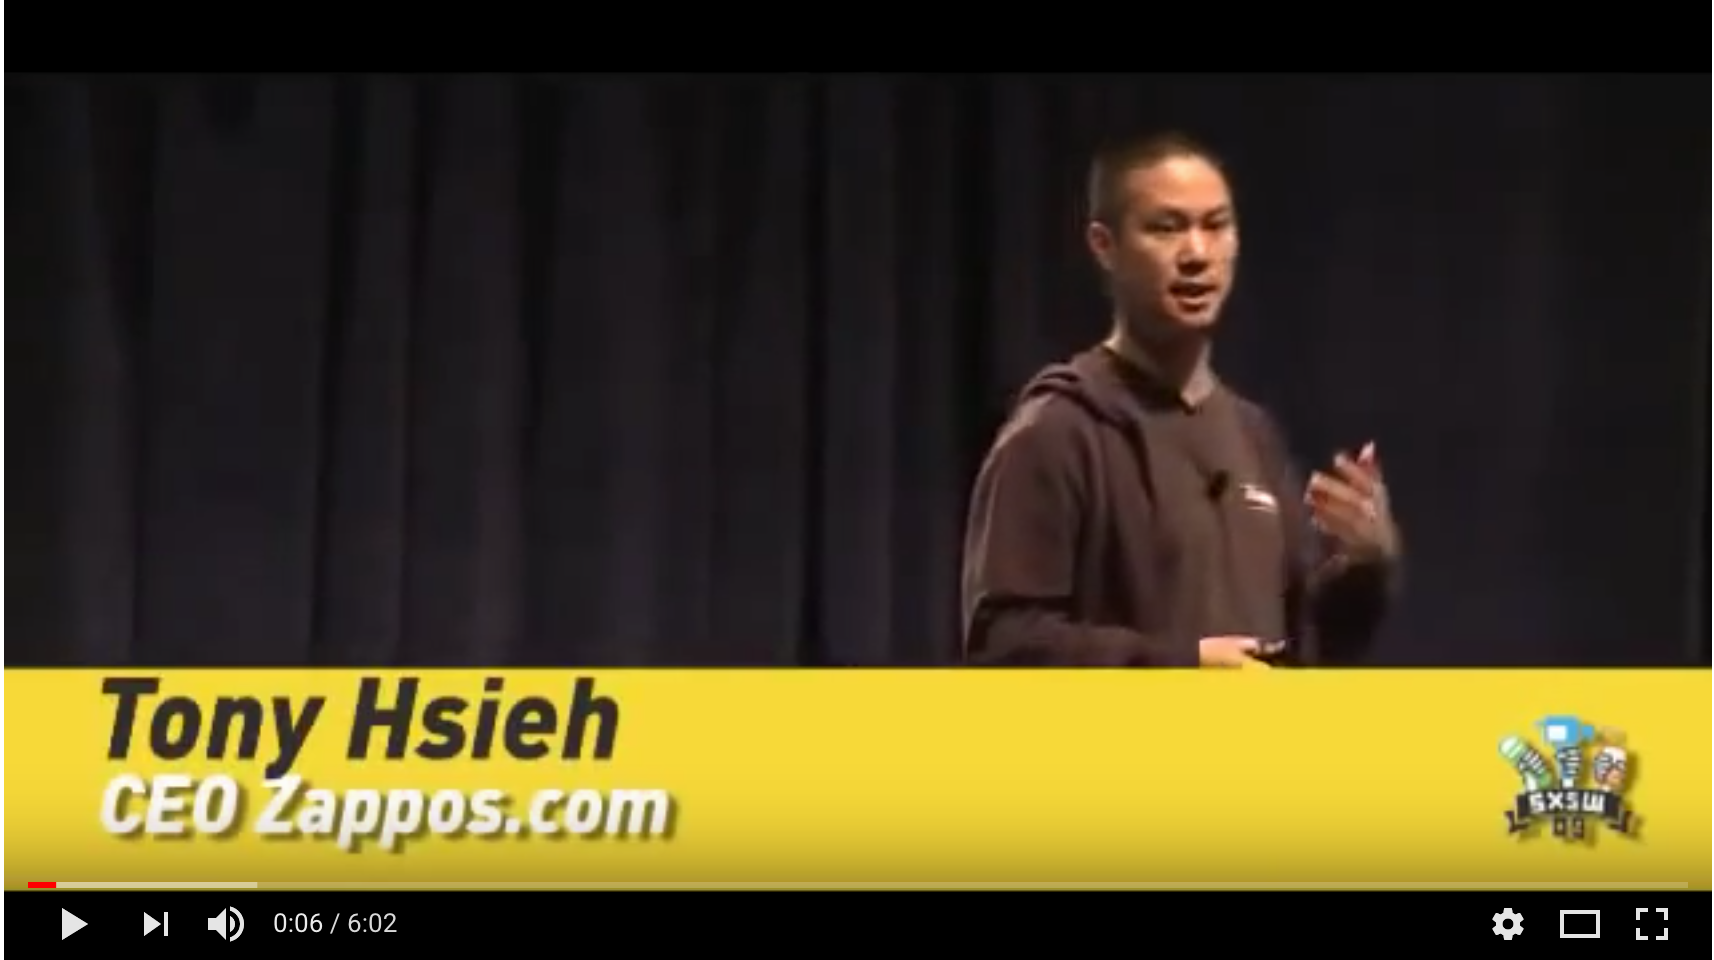 Tony Hsieh- The Zappos Brand & Customer Service: Motivational Speaker & Author